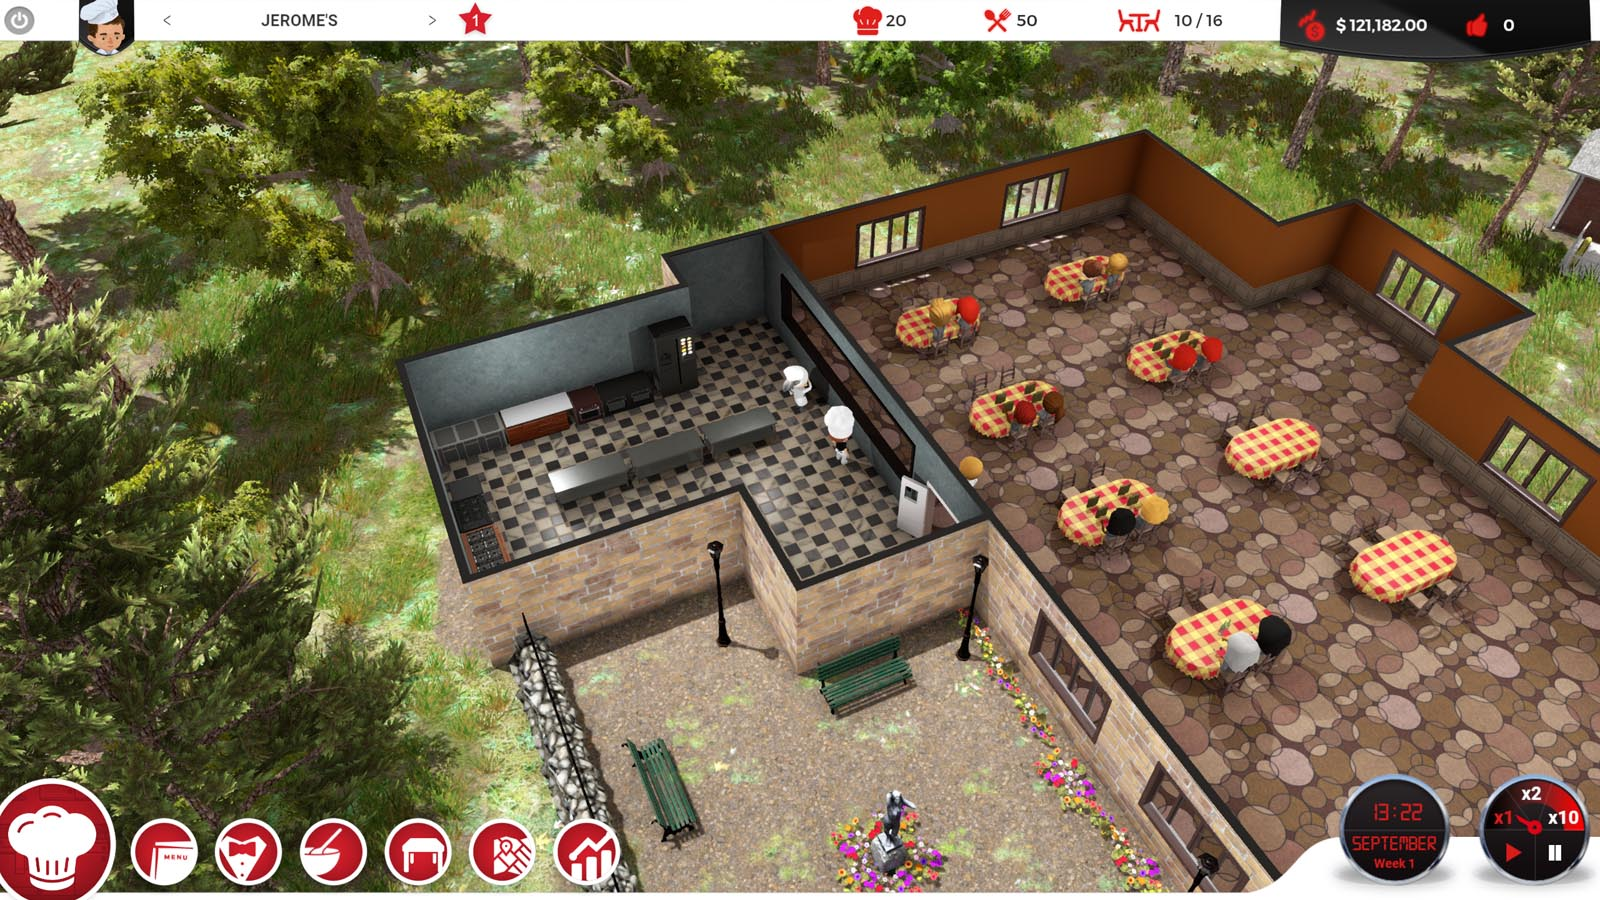 Chef - A Restaurant Tycoon Game from Italy with Love (And